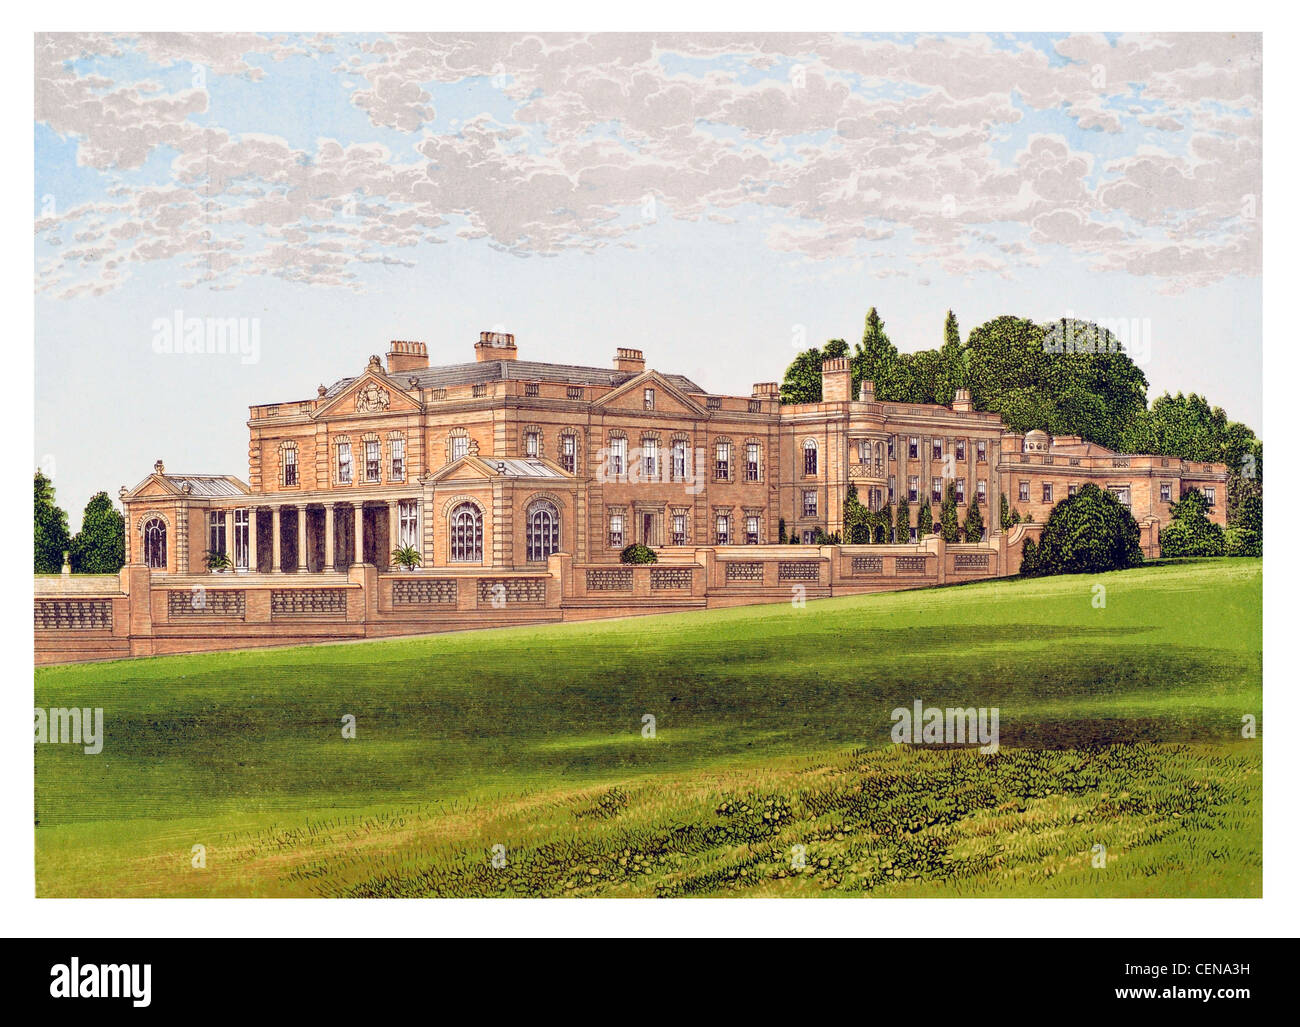 Home Design Architectural Free Download Gunton Hall Britain England Uk Parkland Park Mansion Manor